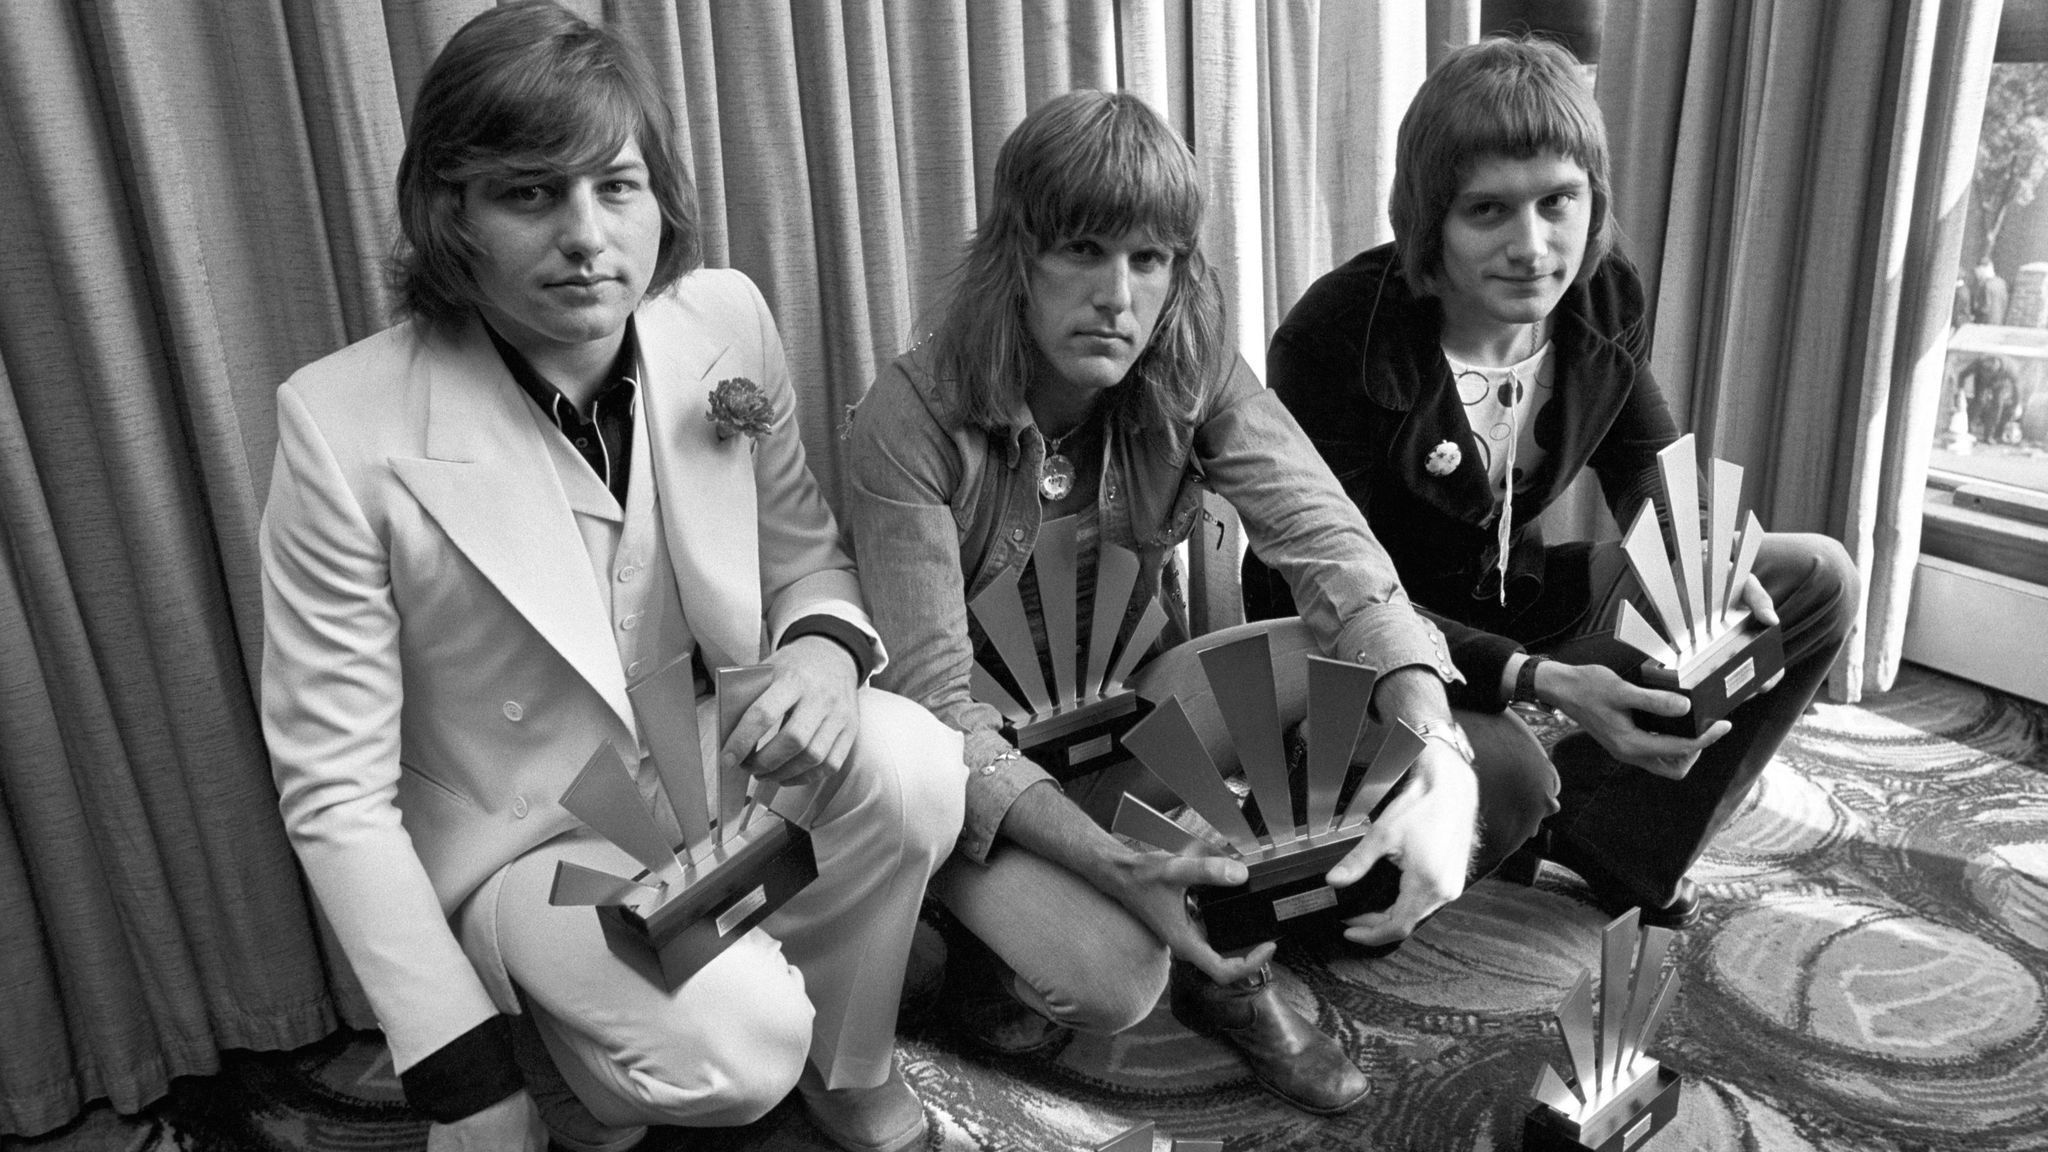 emerson lake and palmer co founder greg lake dies at 69 la times. Black Bedroom Furniture Sets. Home Design Ideas